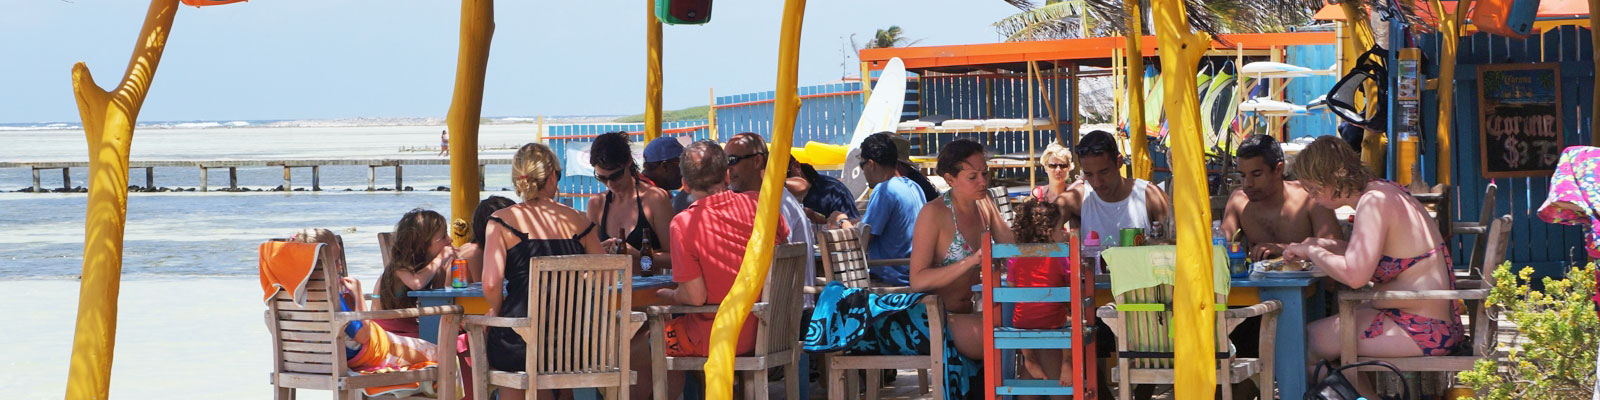 the-hangout-beach-bar-imageslider-1